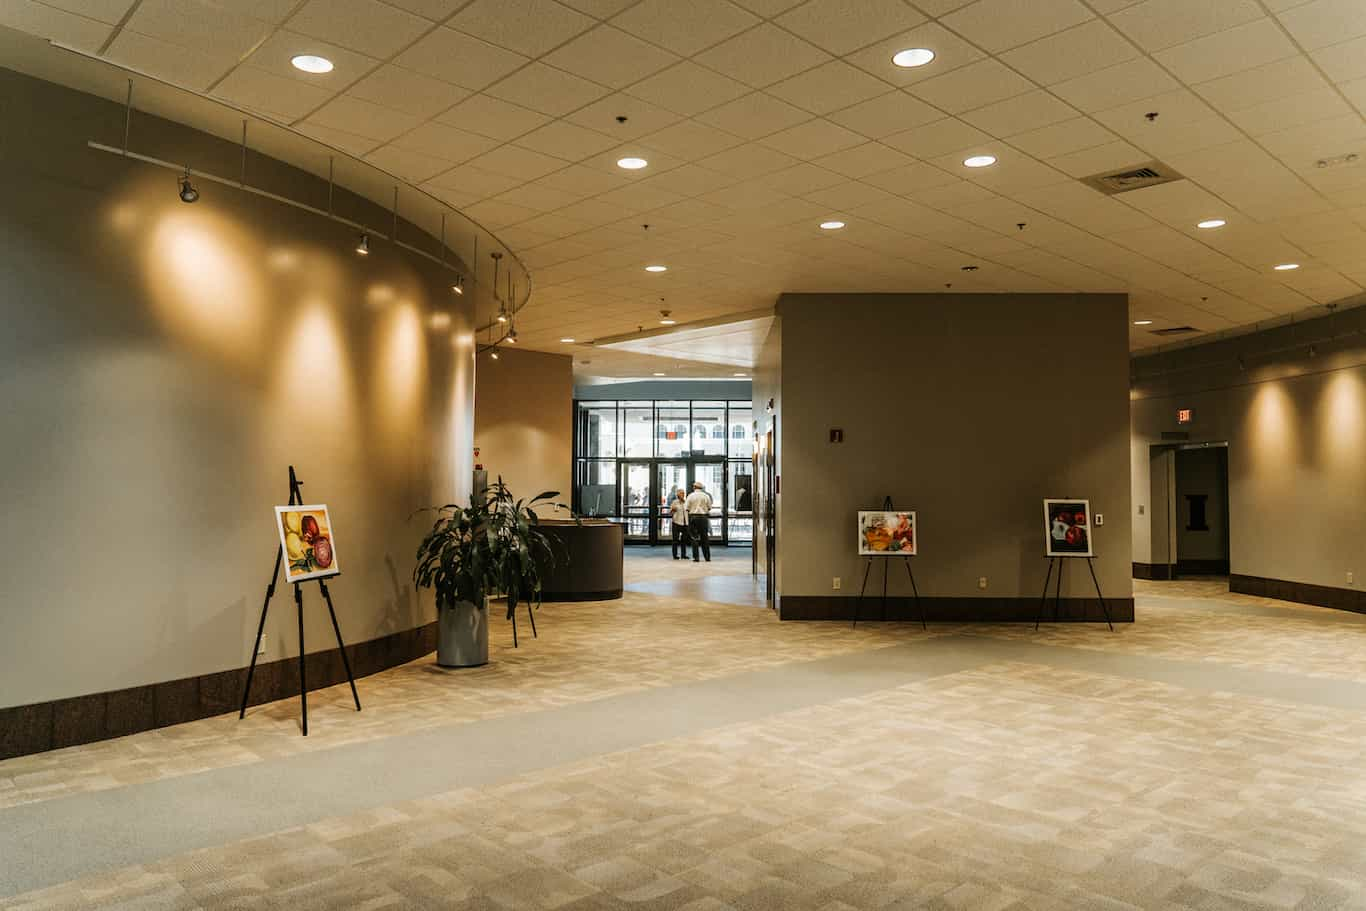 dougherty-county-government-center-renovations-3